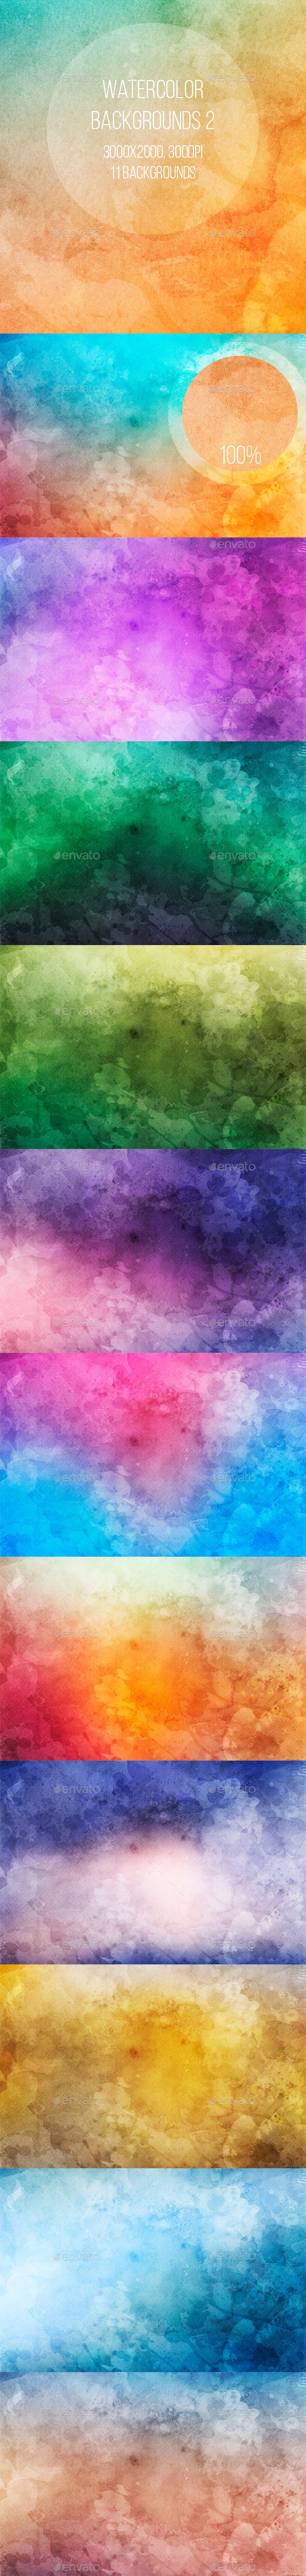 Watercolor Backgrounds 2 - Abstract Backgrounds